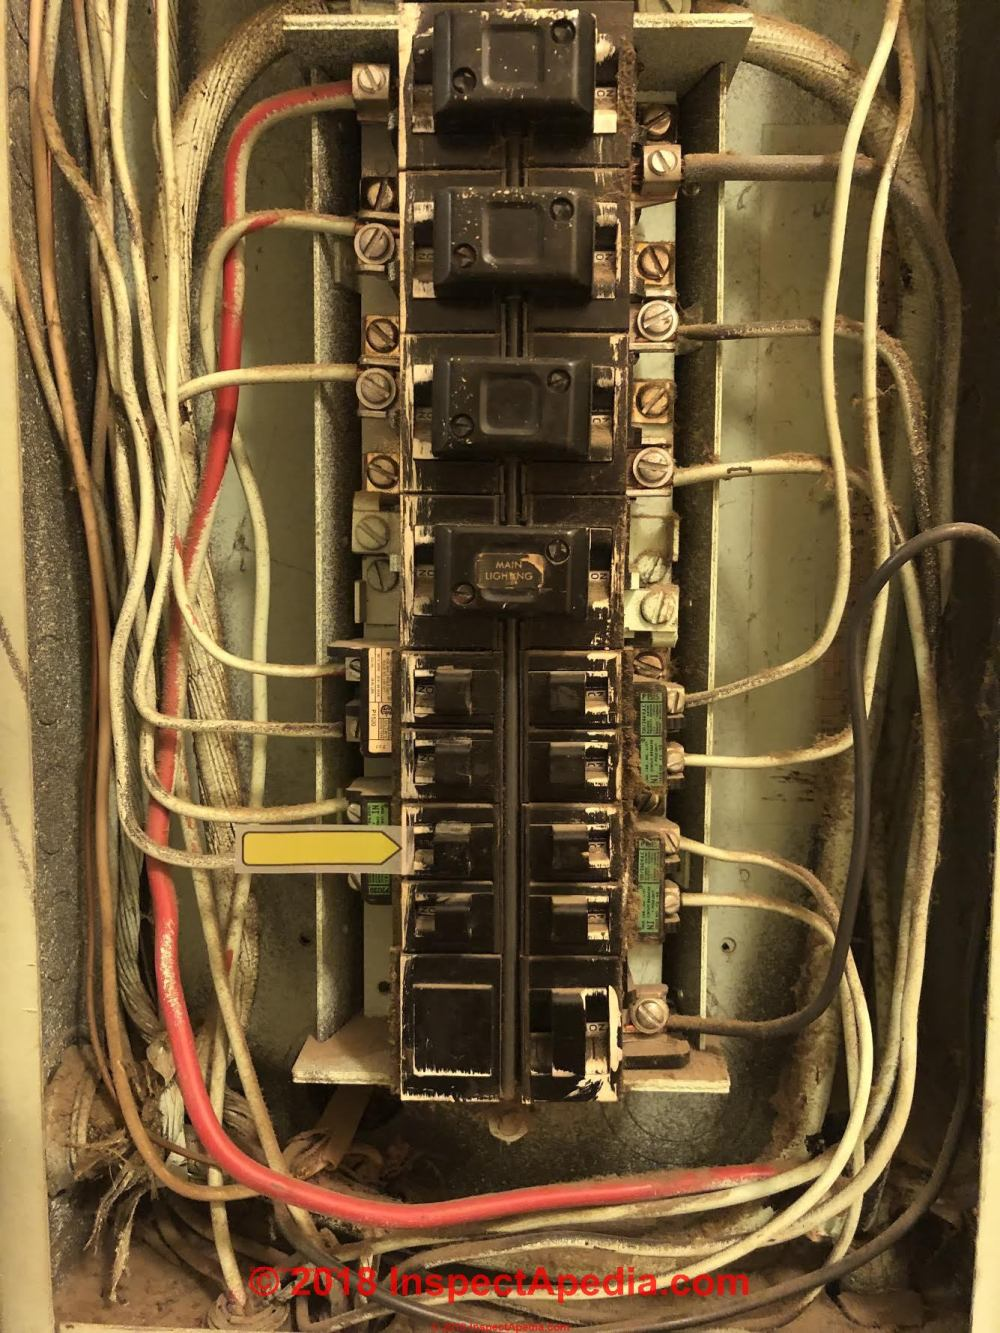 medium resolution of bulldog pushmatic circuit breakers which are the main switches c inspectapedia